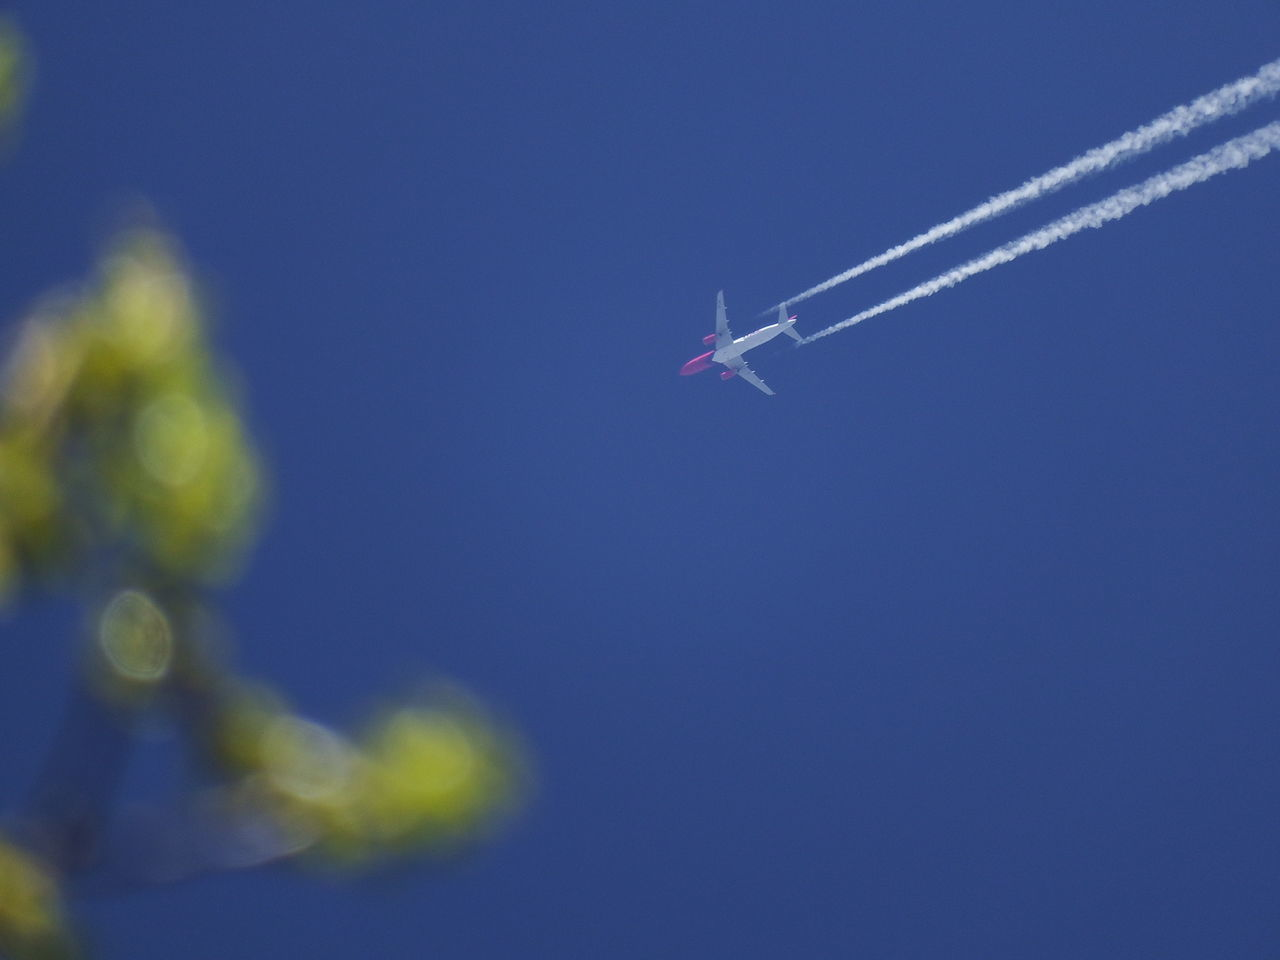 AIRPLANE Leaving Vapor Trail In Sky